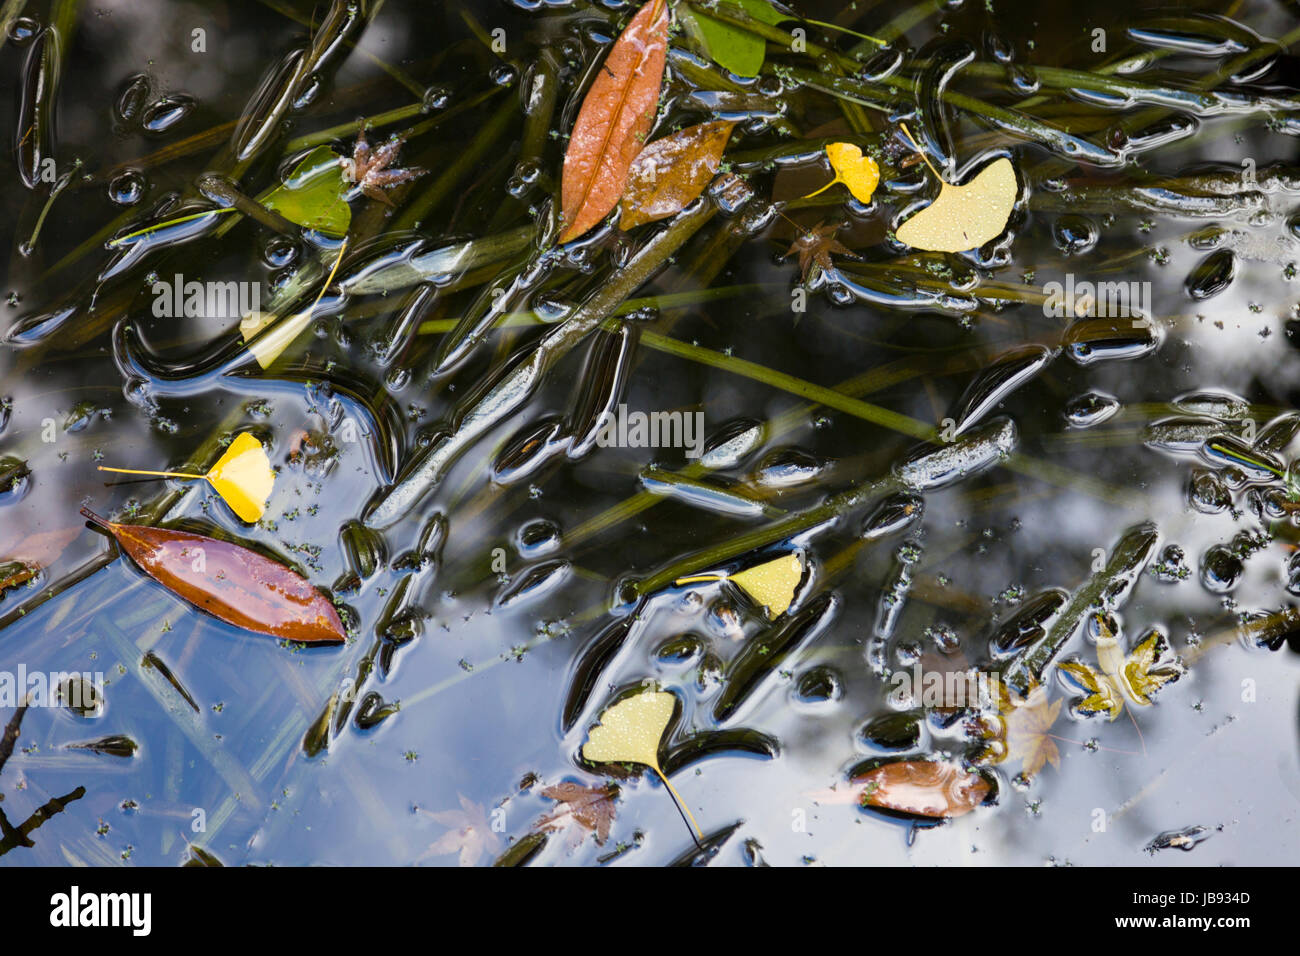 Dried leaves floating on lake water. - Stock Image